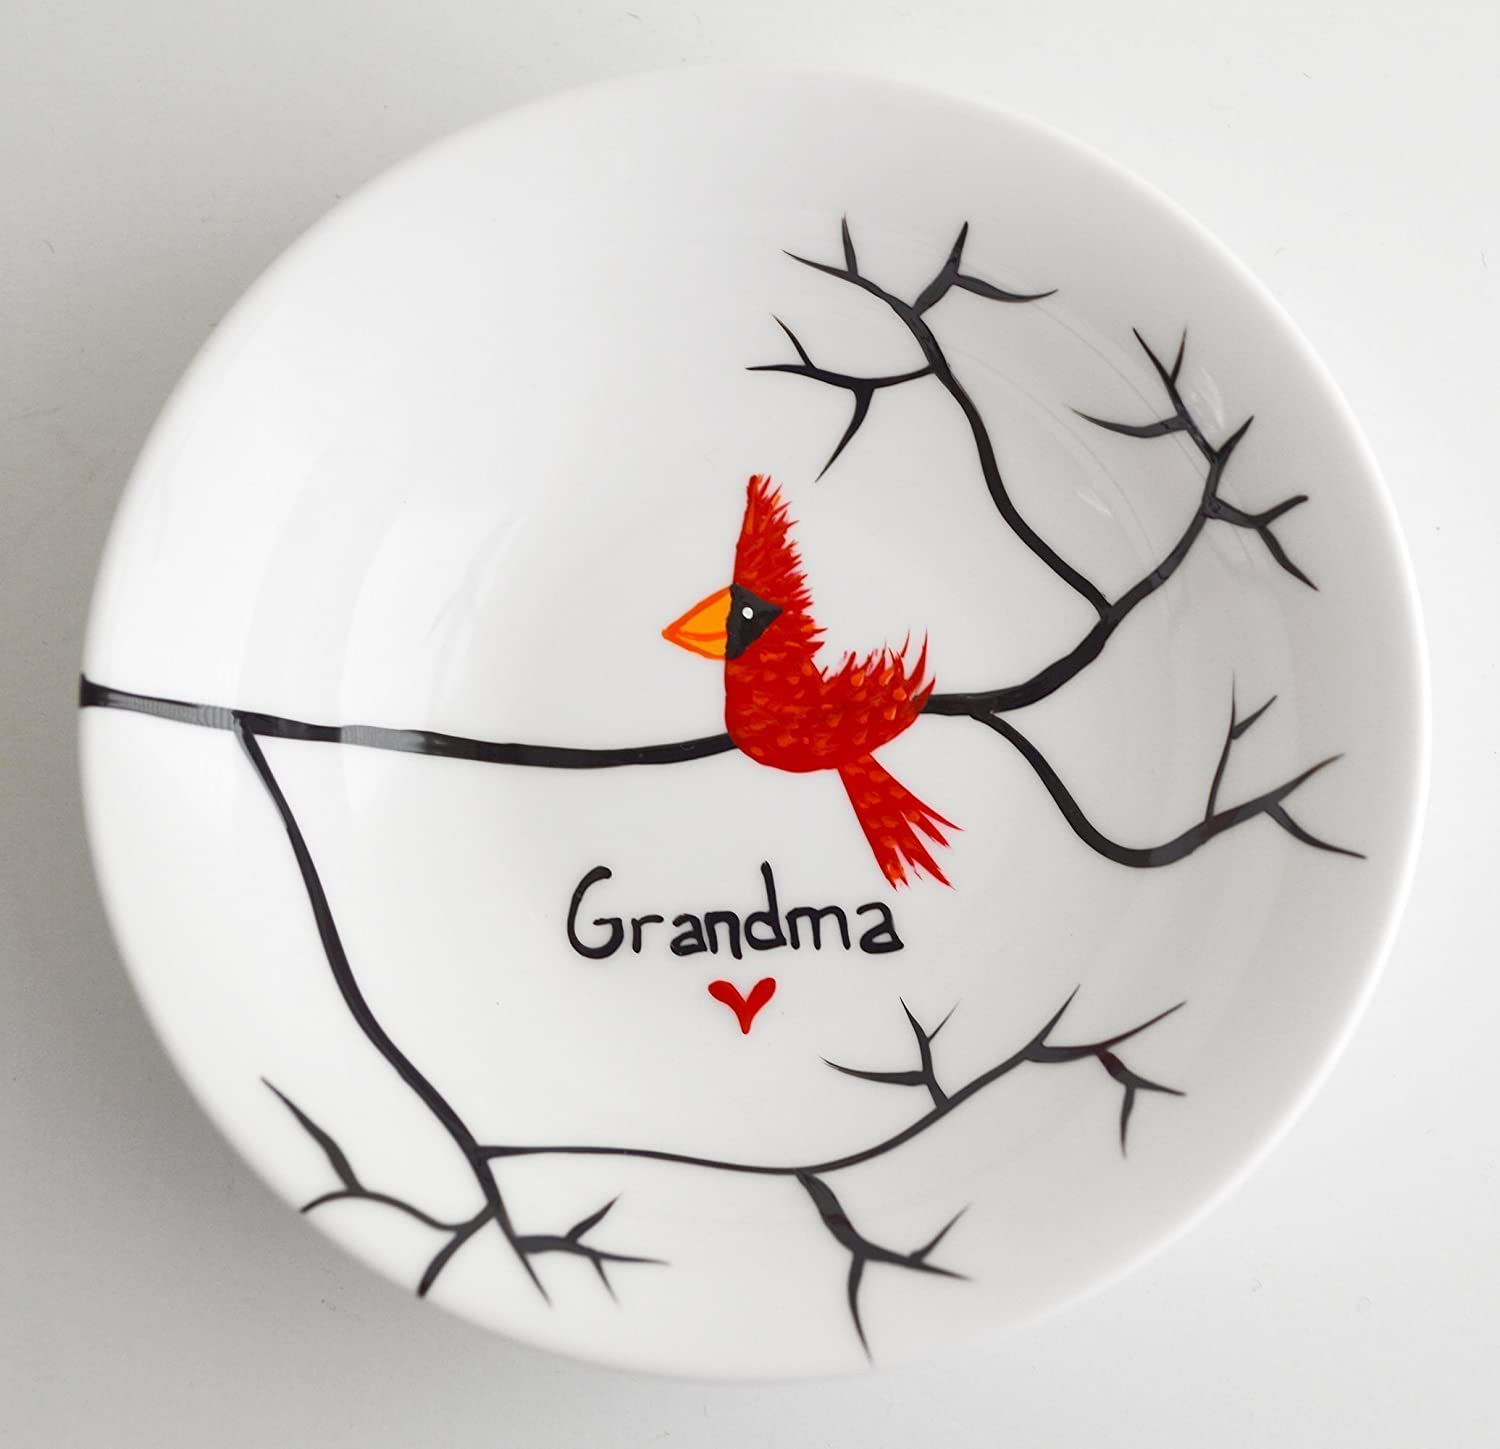 Cardinal Red Bird Ring Dish - Personalized Gift, Personalized Jewelry Bowl, Gifts for Grandma